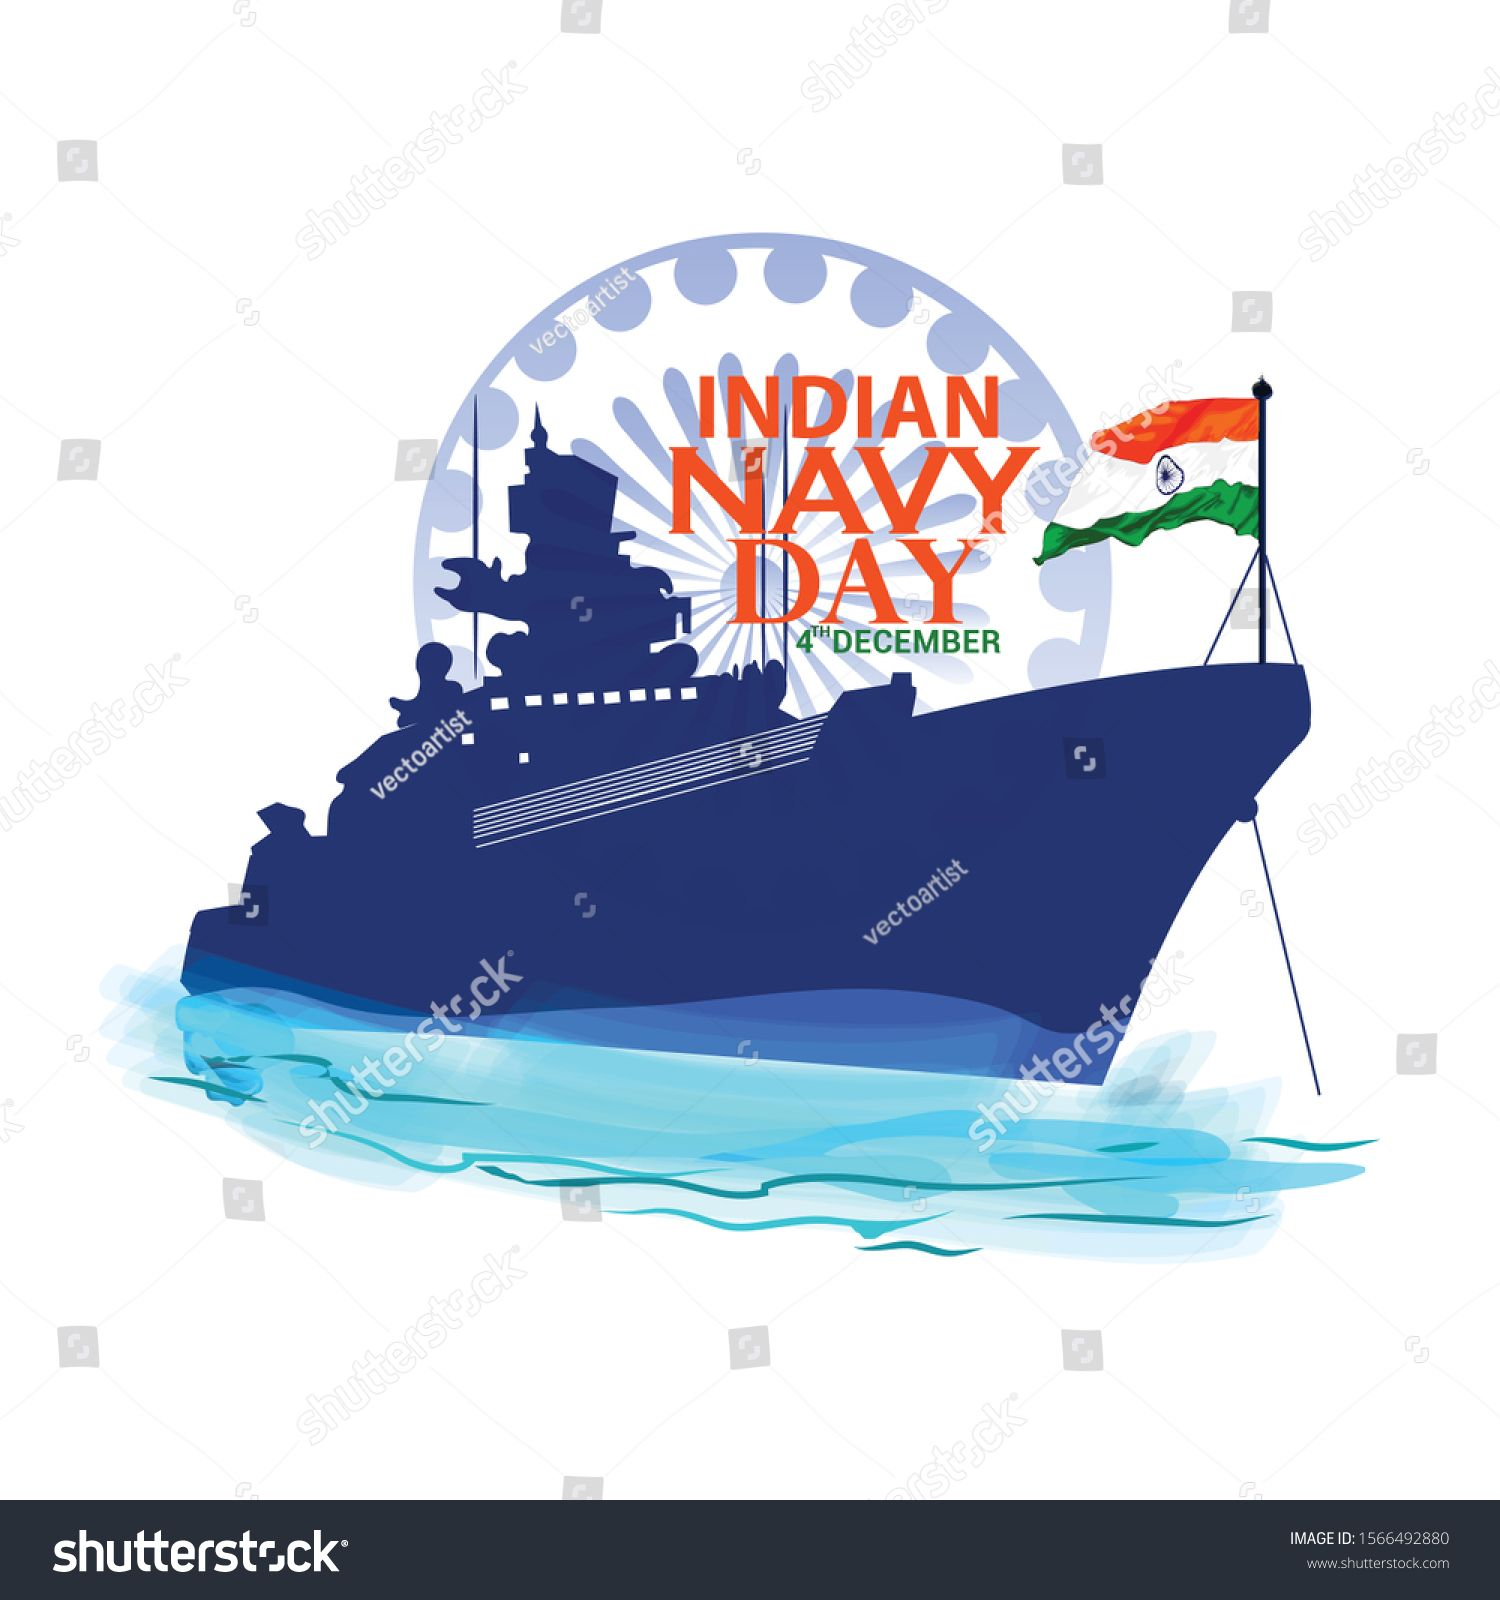 Indian Navy Day In India Is Celebrated On 4 December Sponsored Ad Day Navy Indian December Indian Navy Day Navy Day Indian Navy